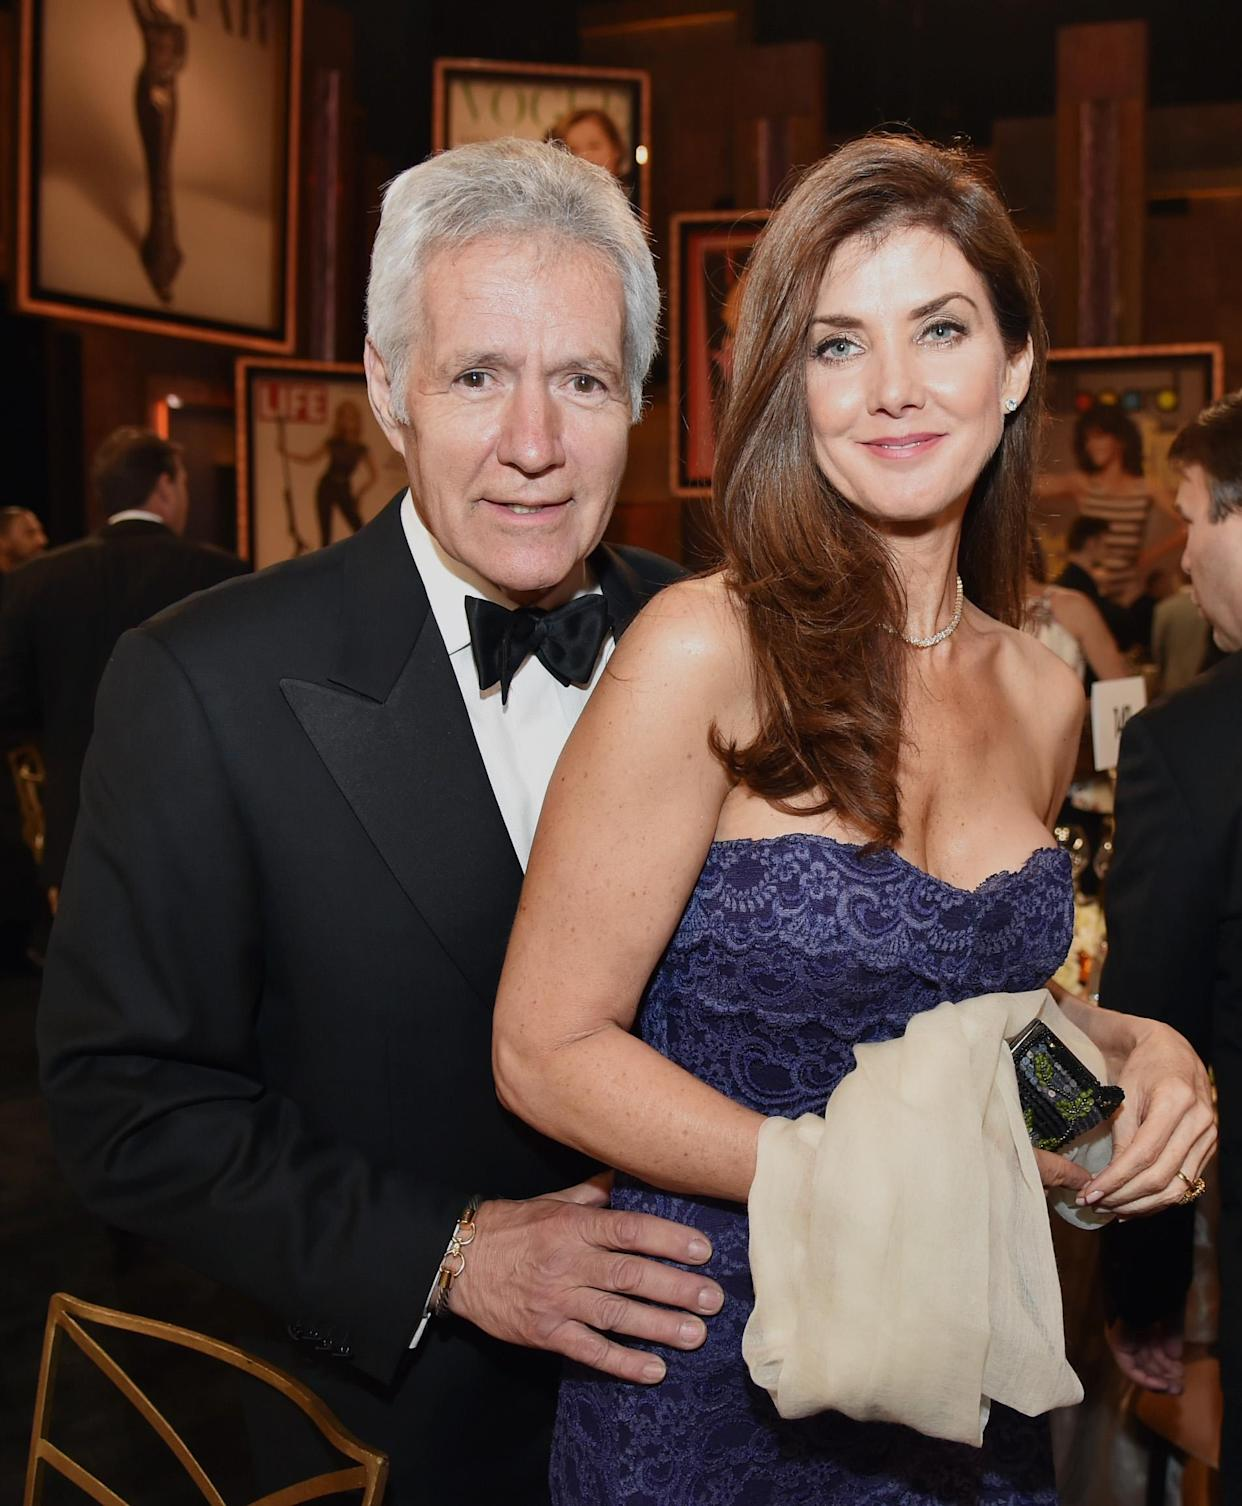 HOLLYWOOD, CA - JUNE 04: TV personality Alex Trebek (L) and Jean Trebek attend the 2014 AFI Life Achievement Award: A Tribute to Jane Fonda at the Dolby Theatre on June 5, 2014 in Hollywood, California. Tribute show airing Saturday, June 14, 2014 at 9pm ET/PT on TNT.  (Photo by Kevin Winter/WireImage)